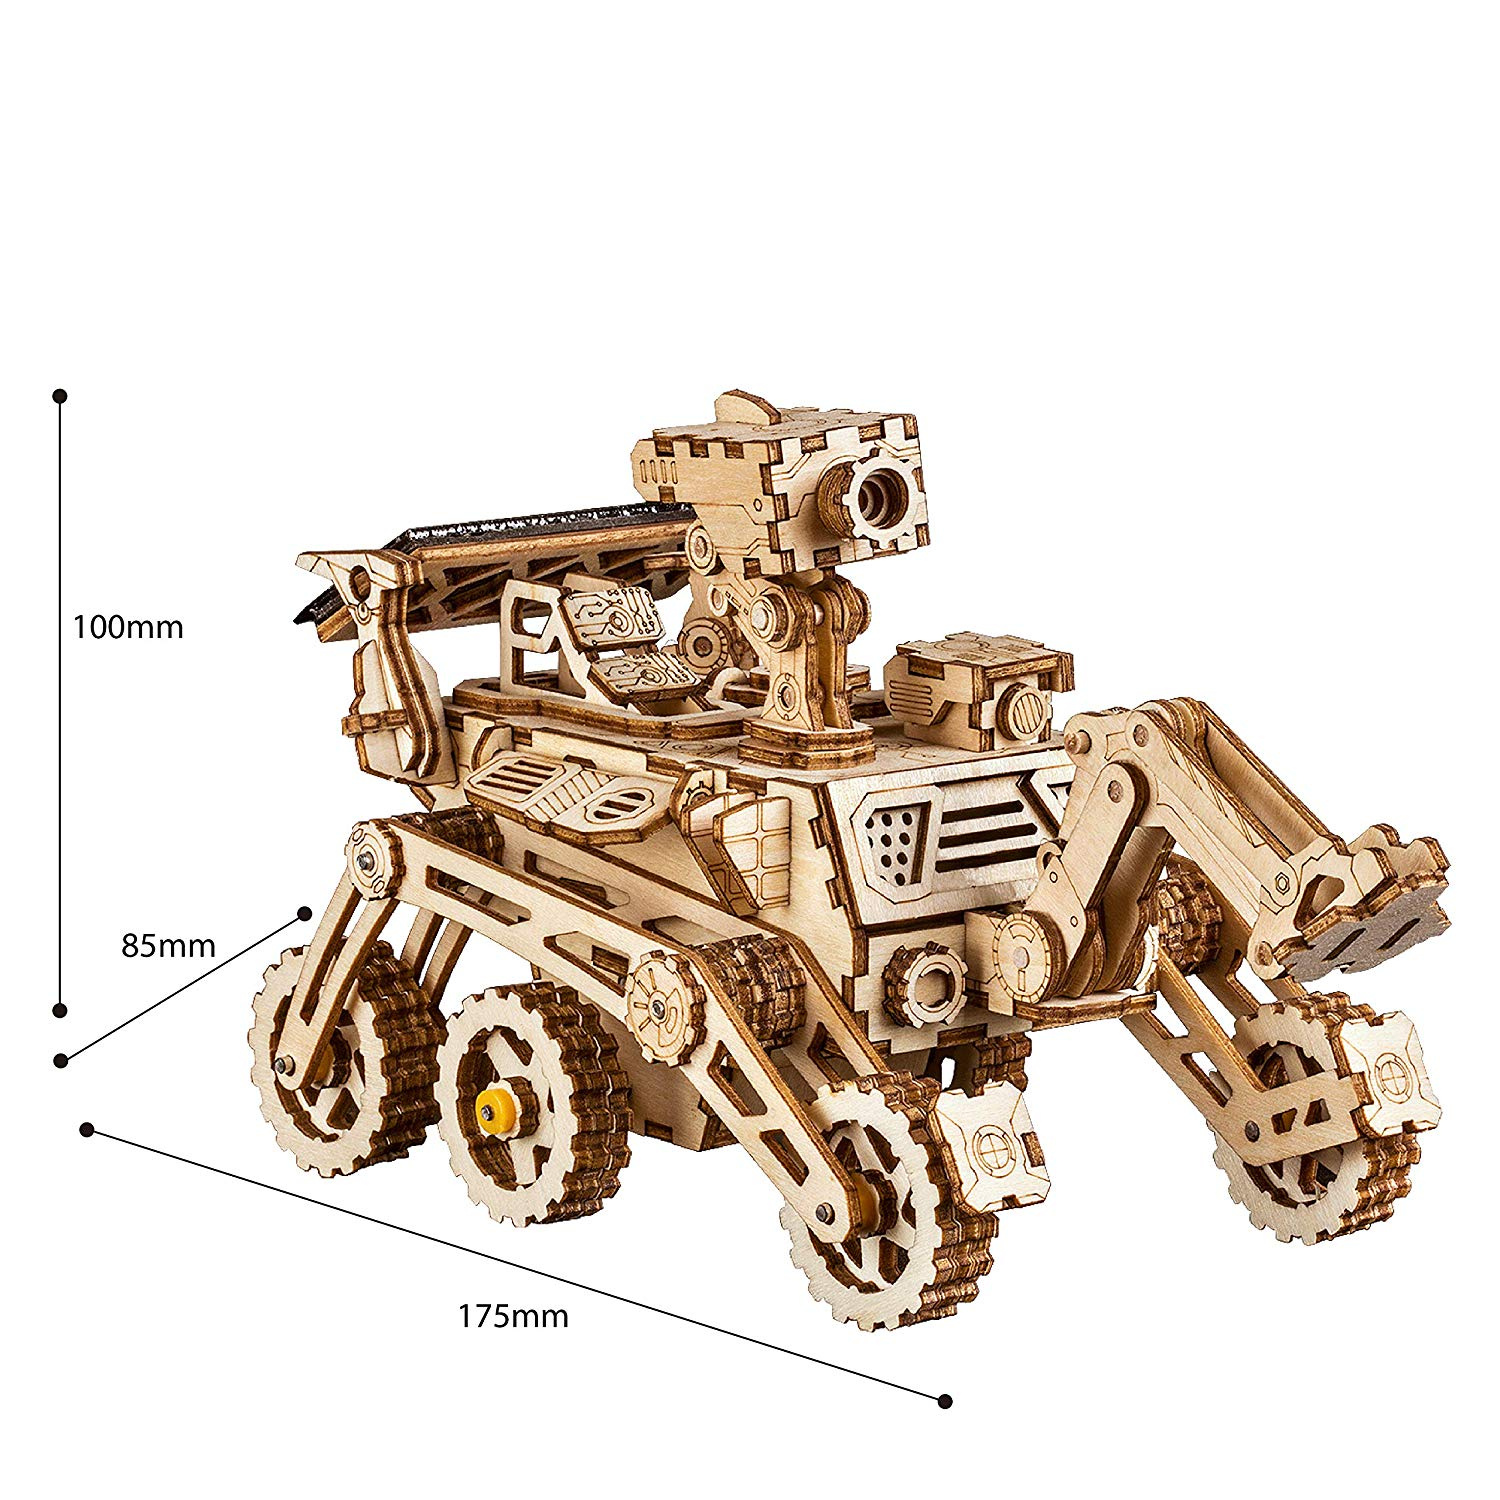 Rokr Mechanical Models3 D Wooden Puzzlesolar Energy Powered Cars Moveable Diy Assembly Toymechanical Gears Constructor Kitsbrain Teaserbest Gifts